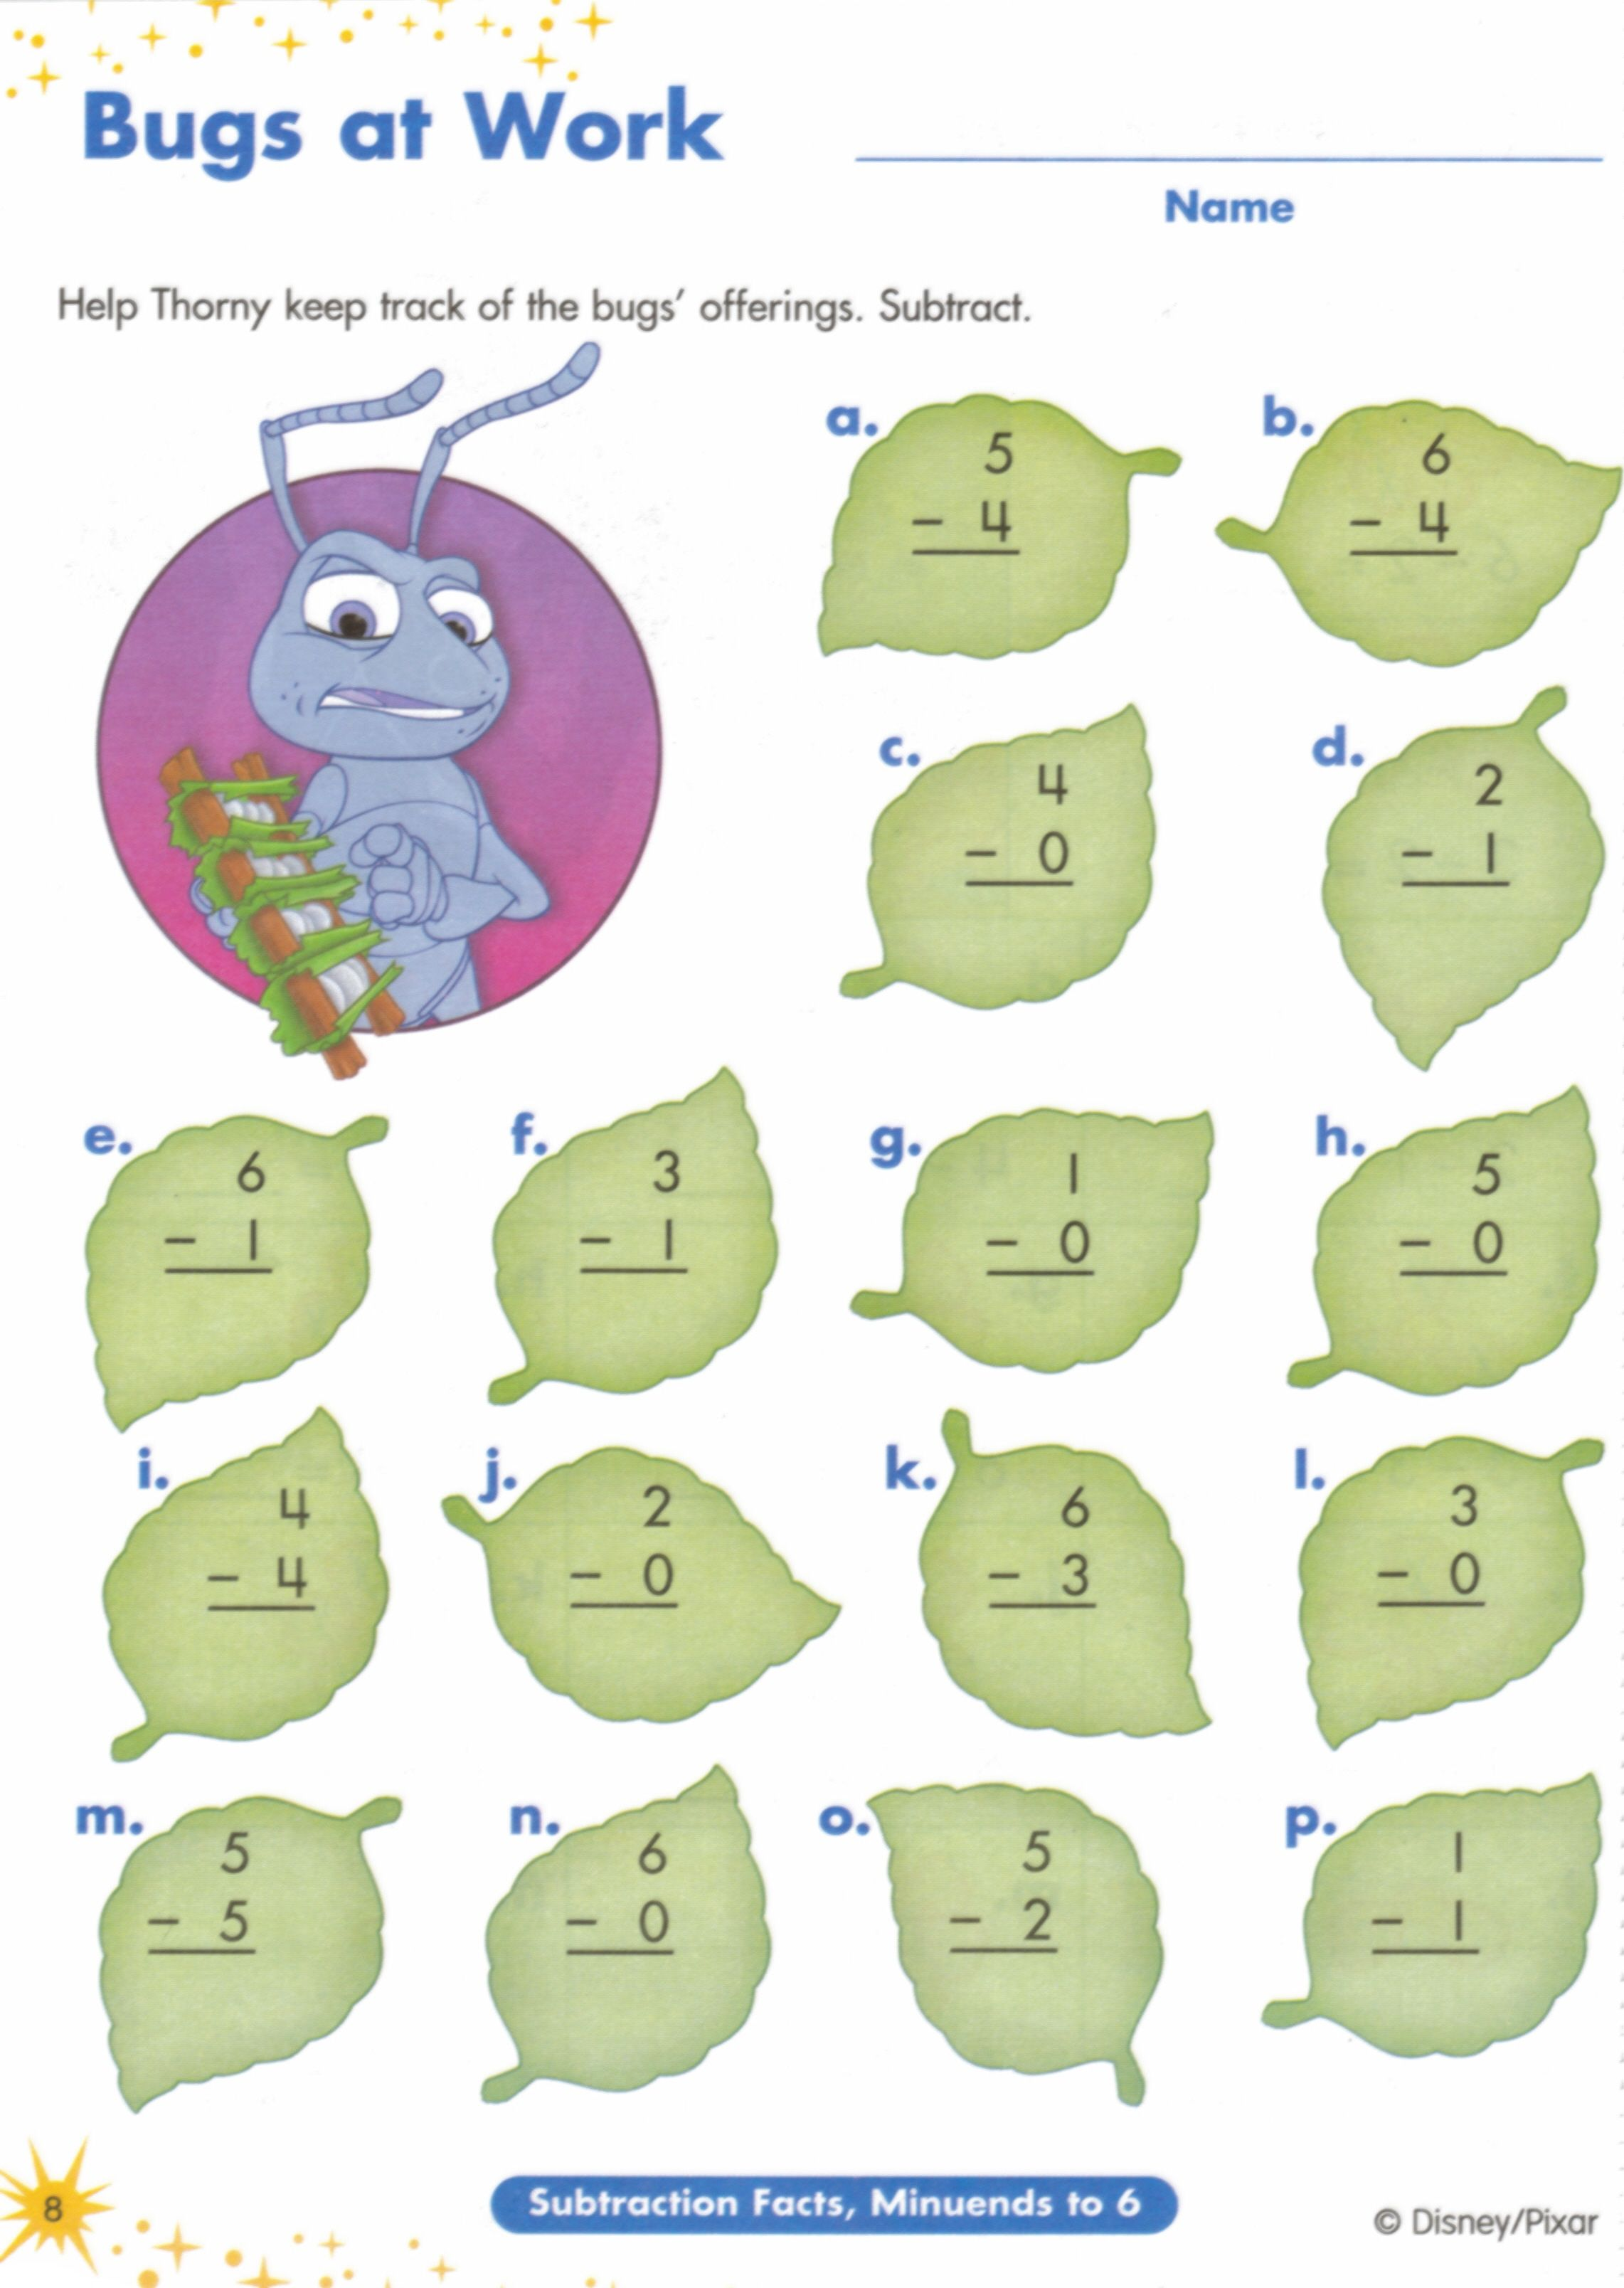 Proatmealus  Stunning  Images About Worksheets On Pinterest  Fun Facts For Kids  With Remarkable  Images About Worksheets On Pinterest  Fun Facts For Kids Earth Day Worksheets And Jungles With Nice Preschool English Worksheet Also Catholic Catechism Worksheets In Addition Letter Practice Worksheets Printable And Ie Split Digraph Worksheets As Well As Undefined Terms In Geometry Worksheets Additionally Worksheets On Weathering And Erosion From Pinterestcom With Proatmealus  Remarkable  Images About Worksheets On Pinterest  Fun Facts For Kids  With Nice  Images About Worksheets On Pinterest  Fun Facts For Kids Earth Day Worksheets And Jungles And Stunning Preschool English Worksheet Also Catholic Catechism Worksheets In Addition Letter Practice Worksheets Printable From Pinterestcom